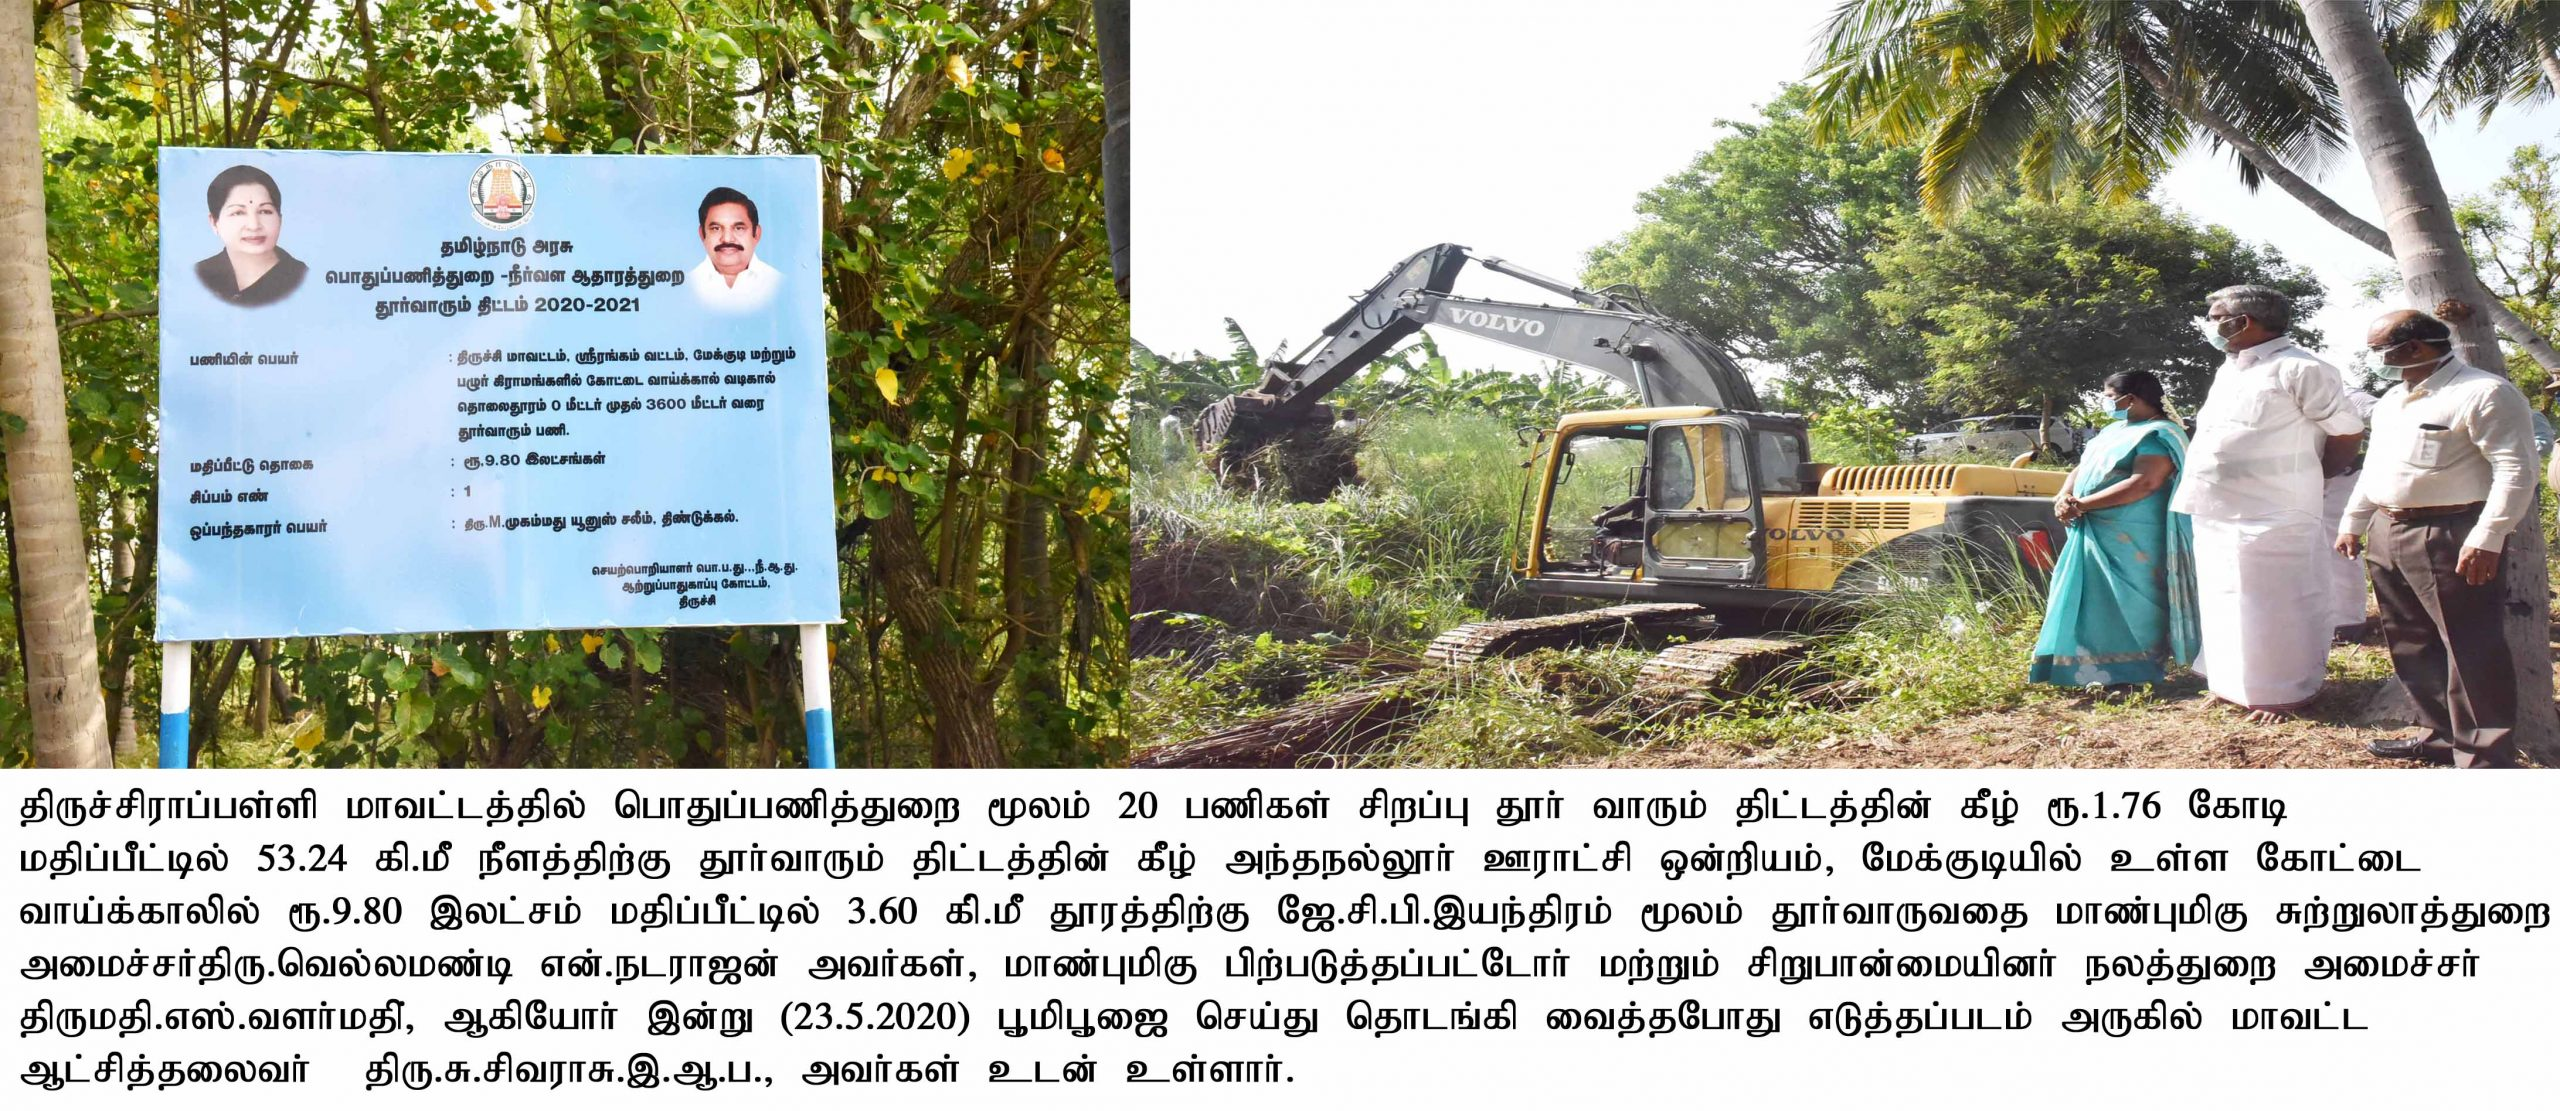 Hon'ble Ministers inaugurated the Desilting works at Andhanallur Block